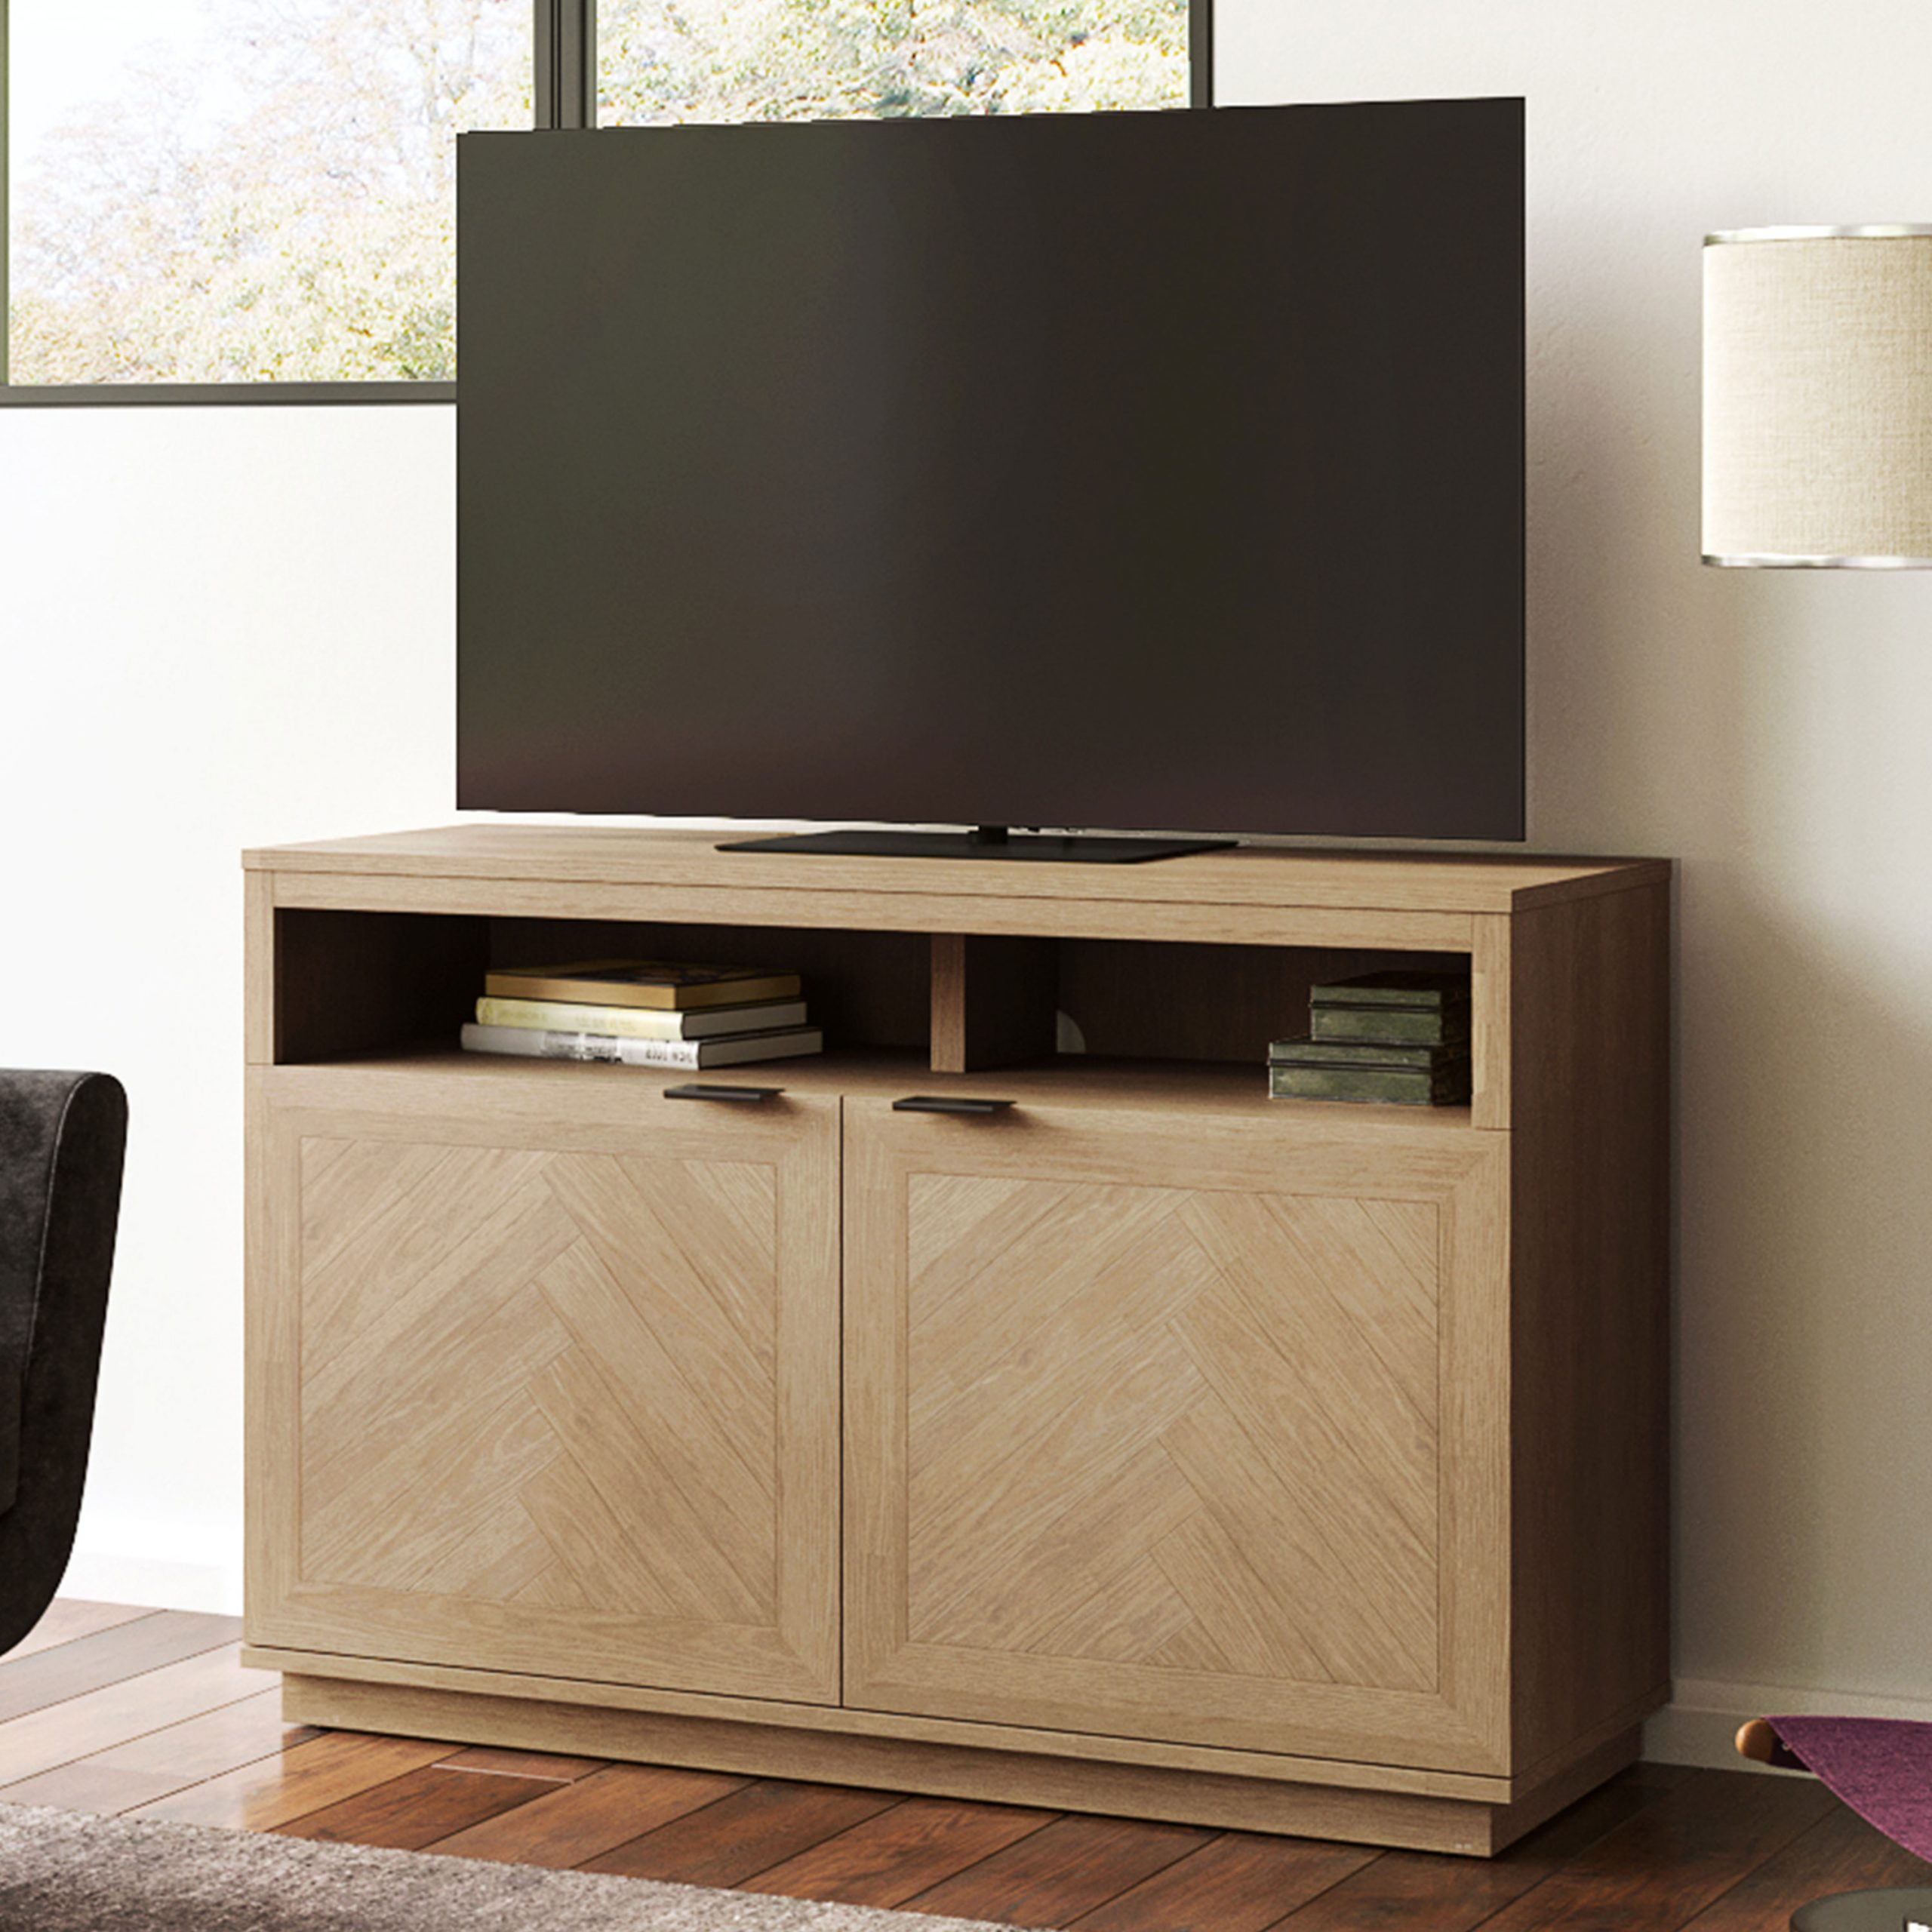 """Better Homes & Gardens Hendrix Herringbone Style Tv Stand Regarding Twila Tv Stands For Tvs Up To 55"""" (View 10 of 20)"""